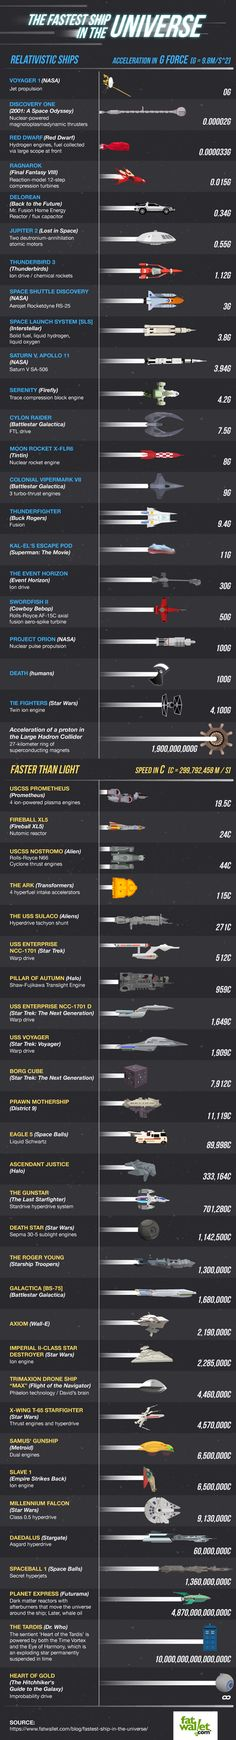 New Infographic Names the Fastest Ship in the Universe | Nerdist